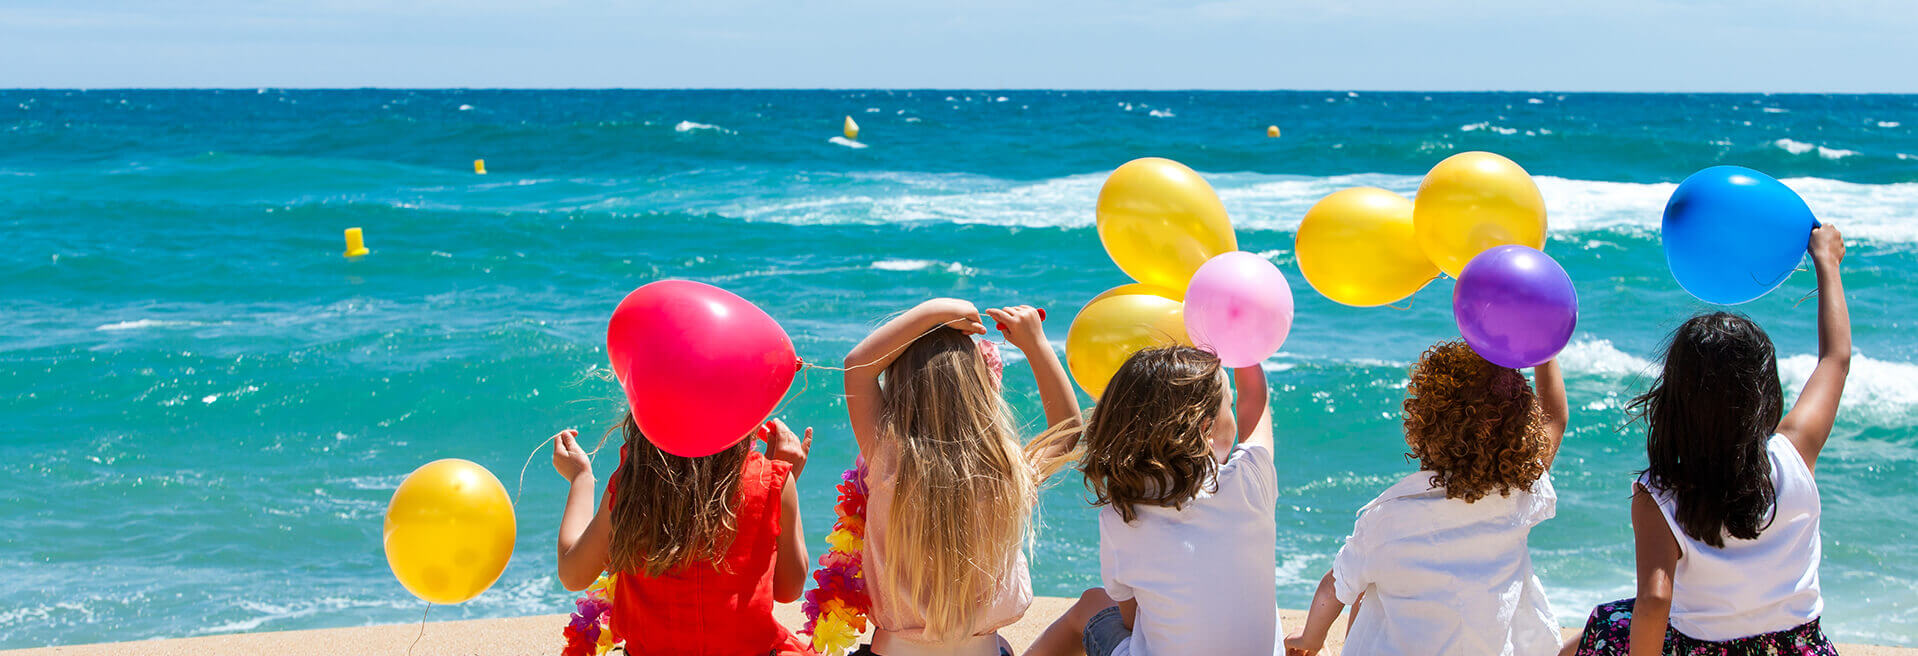 Kids on beach with balloons